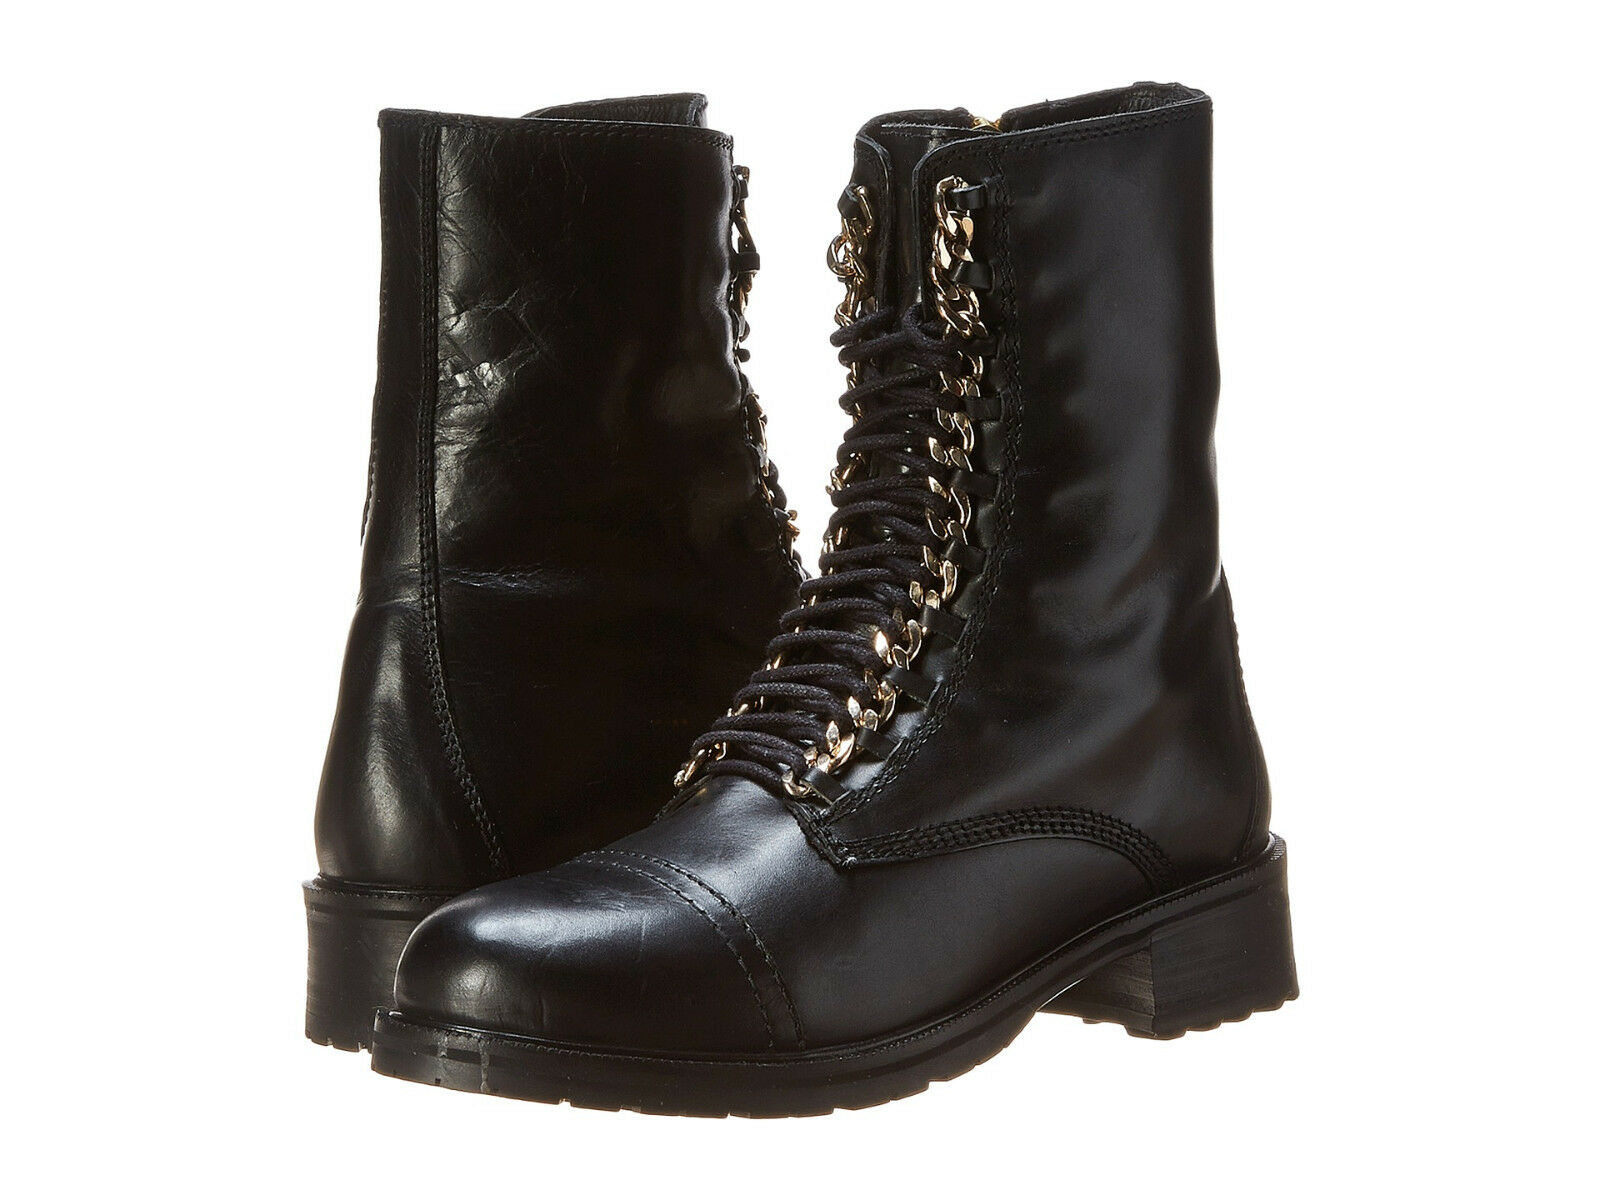 NEW STEVE MADDEN 130 BLACK LEATHER 2 CHAIN COMBAT BOOTS SZ 7